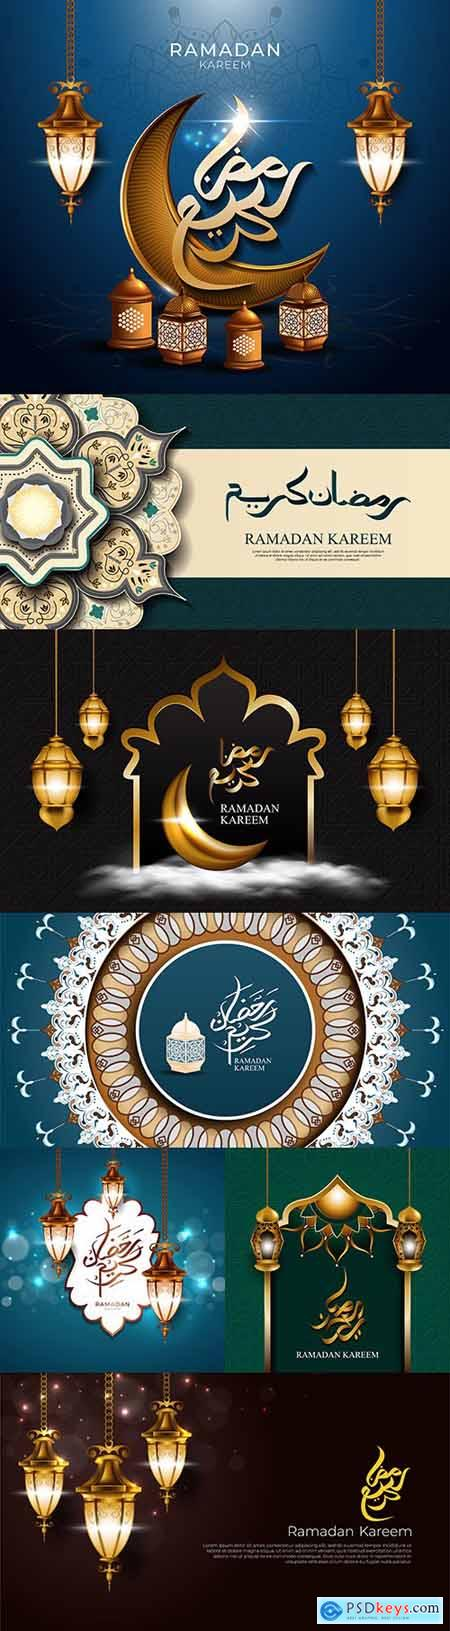 Ramadan Kareem Islamic postcard design illustrations 20